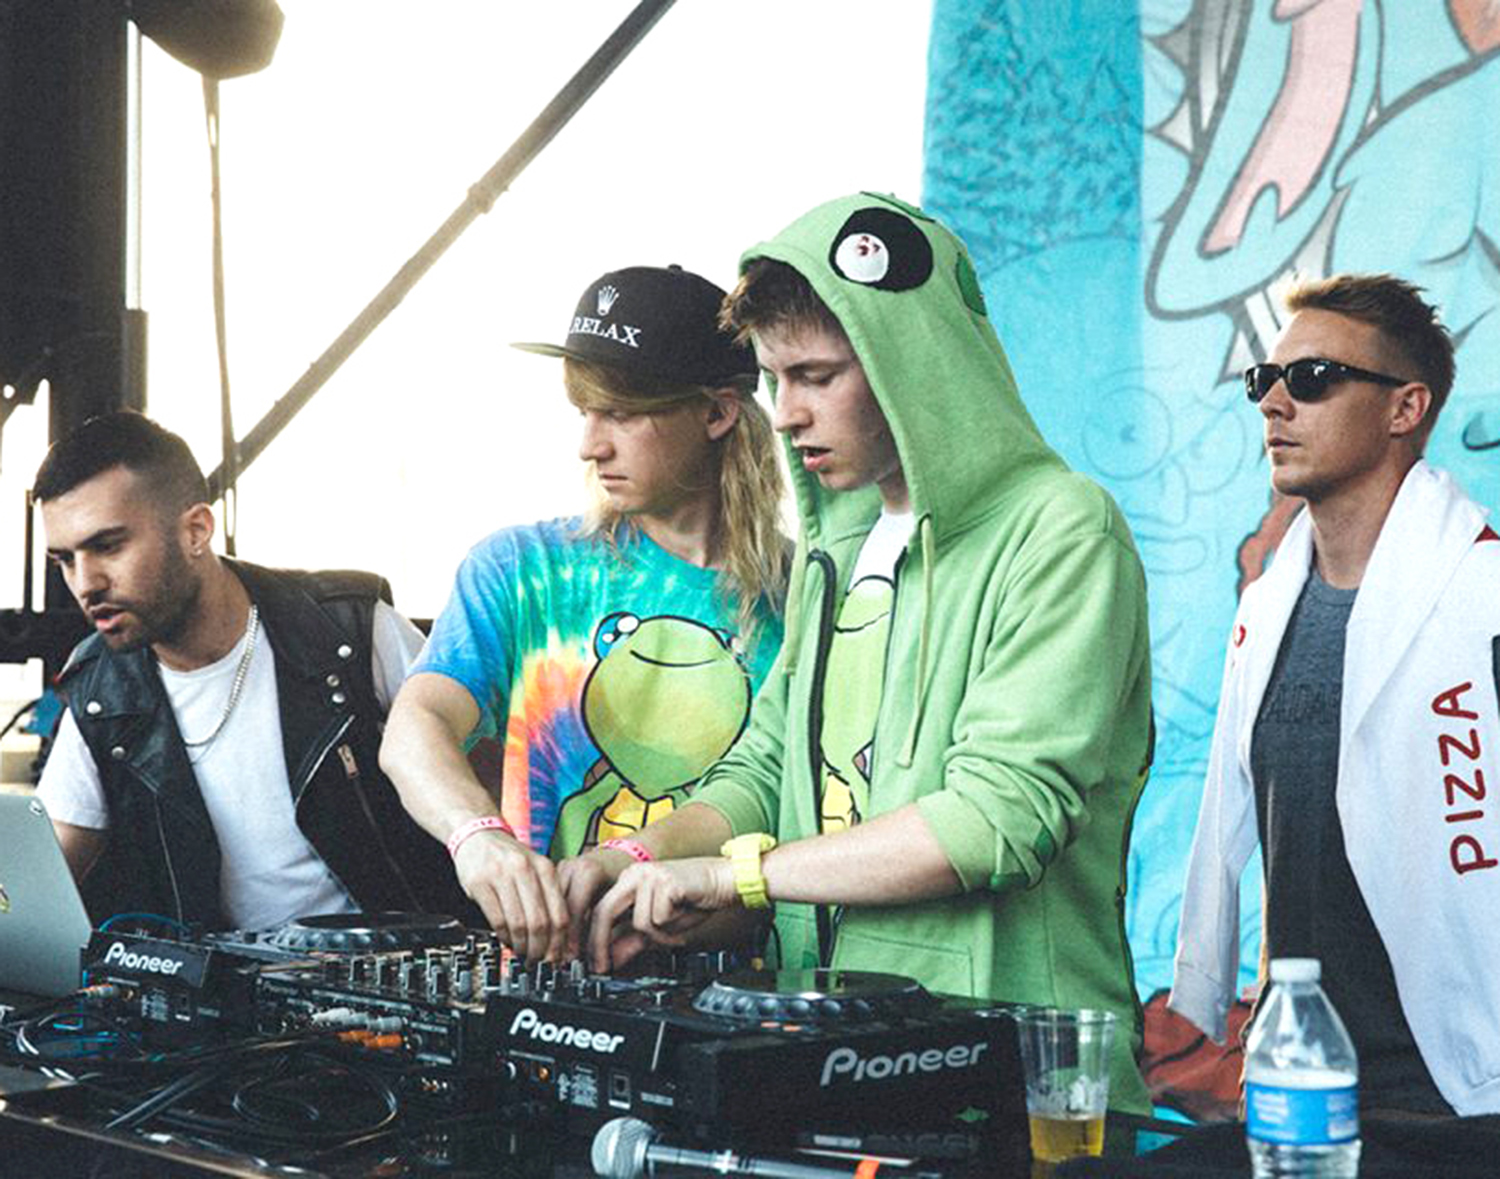 New kids on the block · Mad Decent Block Party is often a discovery point for electronic music enthusiasts. Here, DJs A-Trak, Cashmere Cat, Trippy Turtle and Diplo mix a set for an L.A. crowd in 2014. - Photo courtesy of Mad Decent